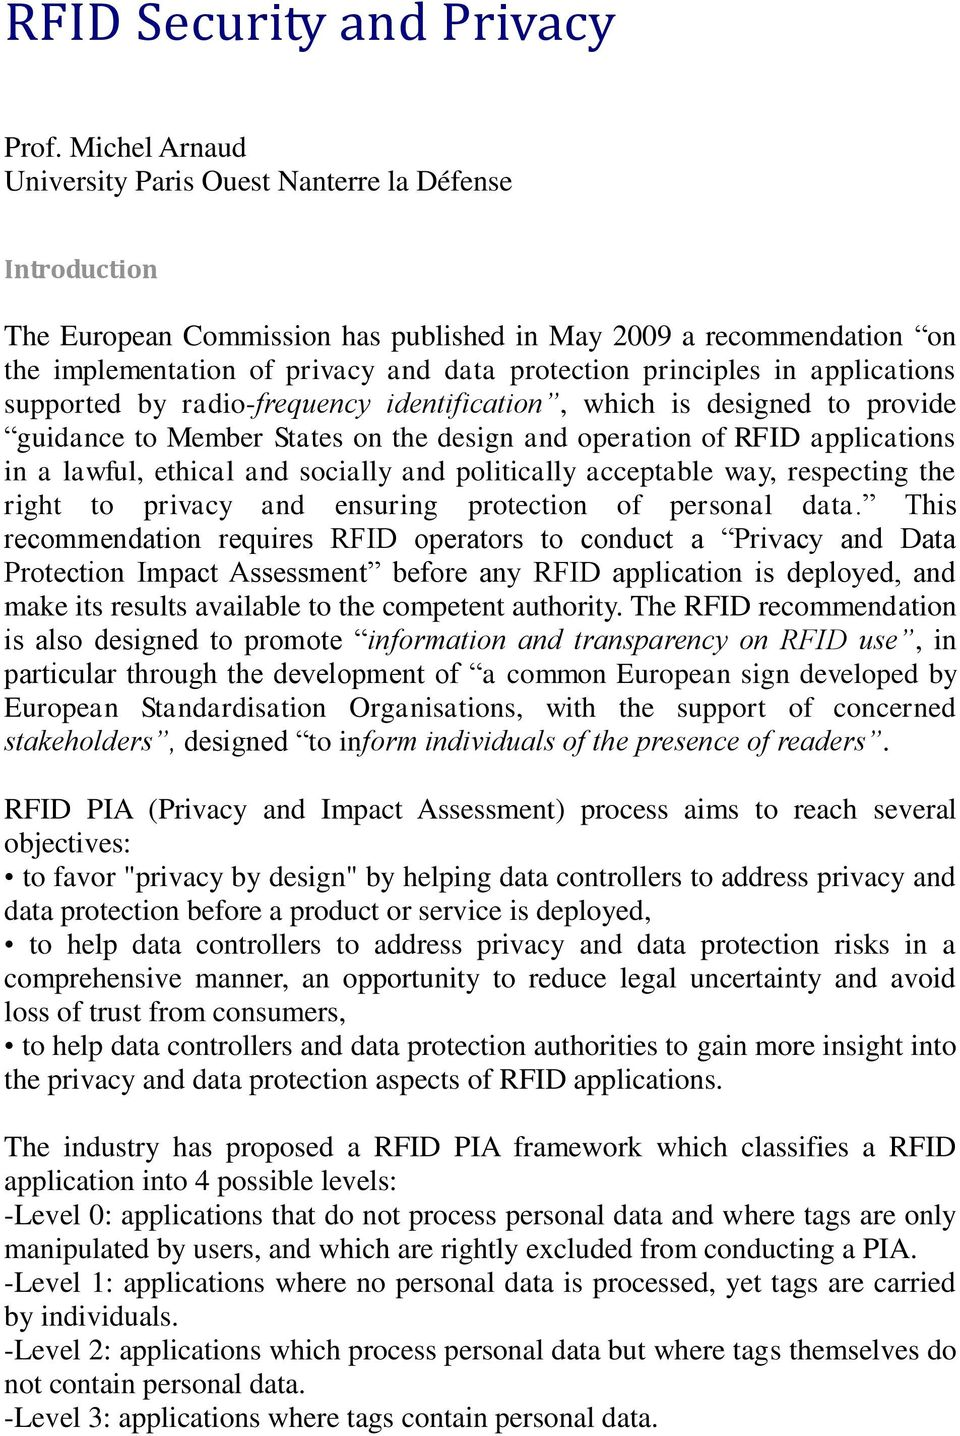 principles in applications supported by radio-frequency identification, which is designed to provide guidance to Member States on the design and operation of RFID applications in a lawful, ethical